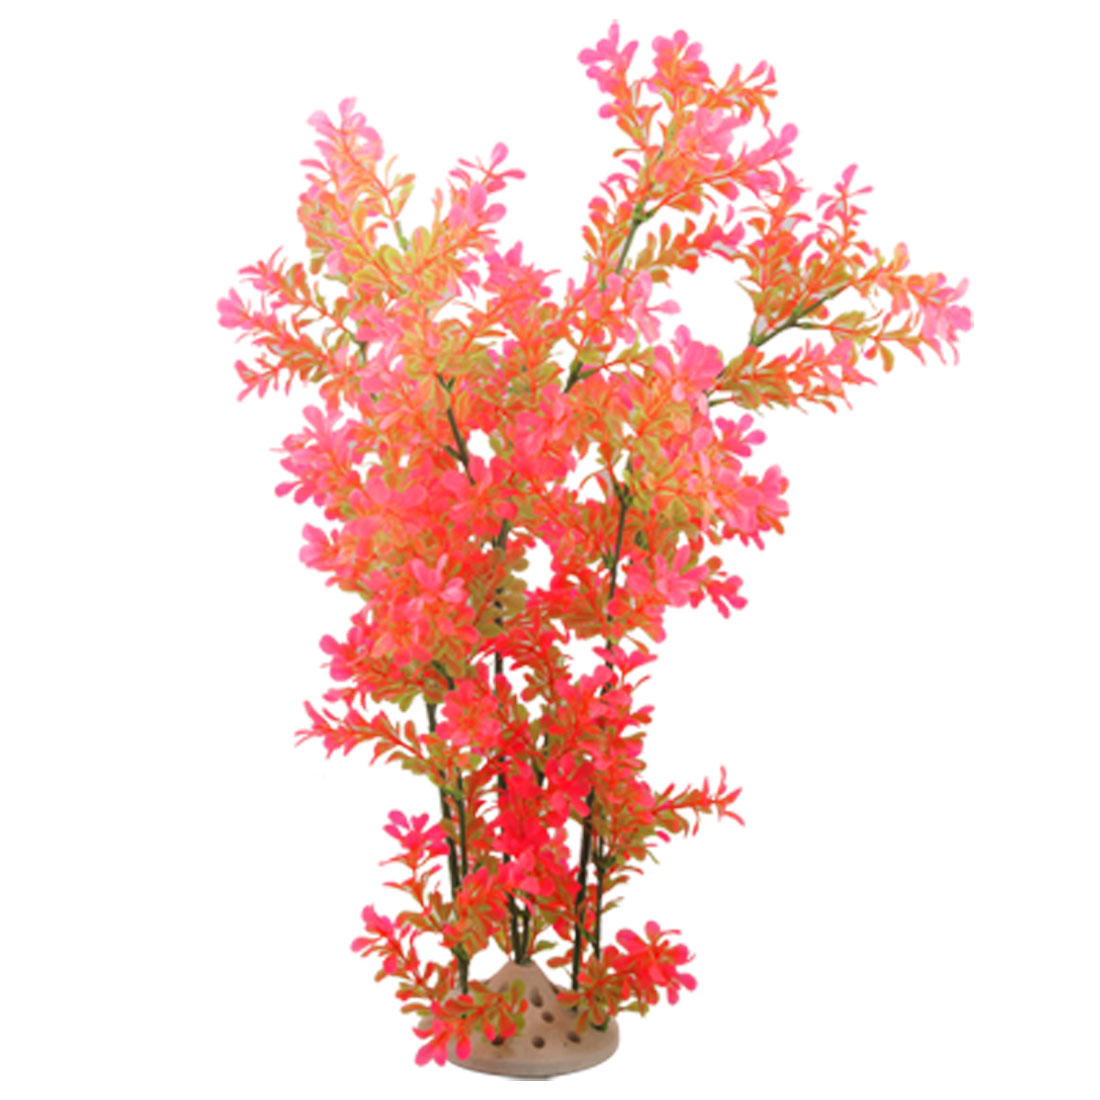 Fish Tank 62CM Height Aquascaping Pink Lime Plants Ornament